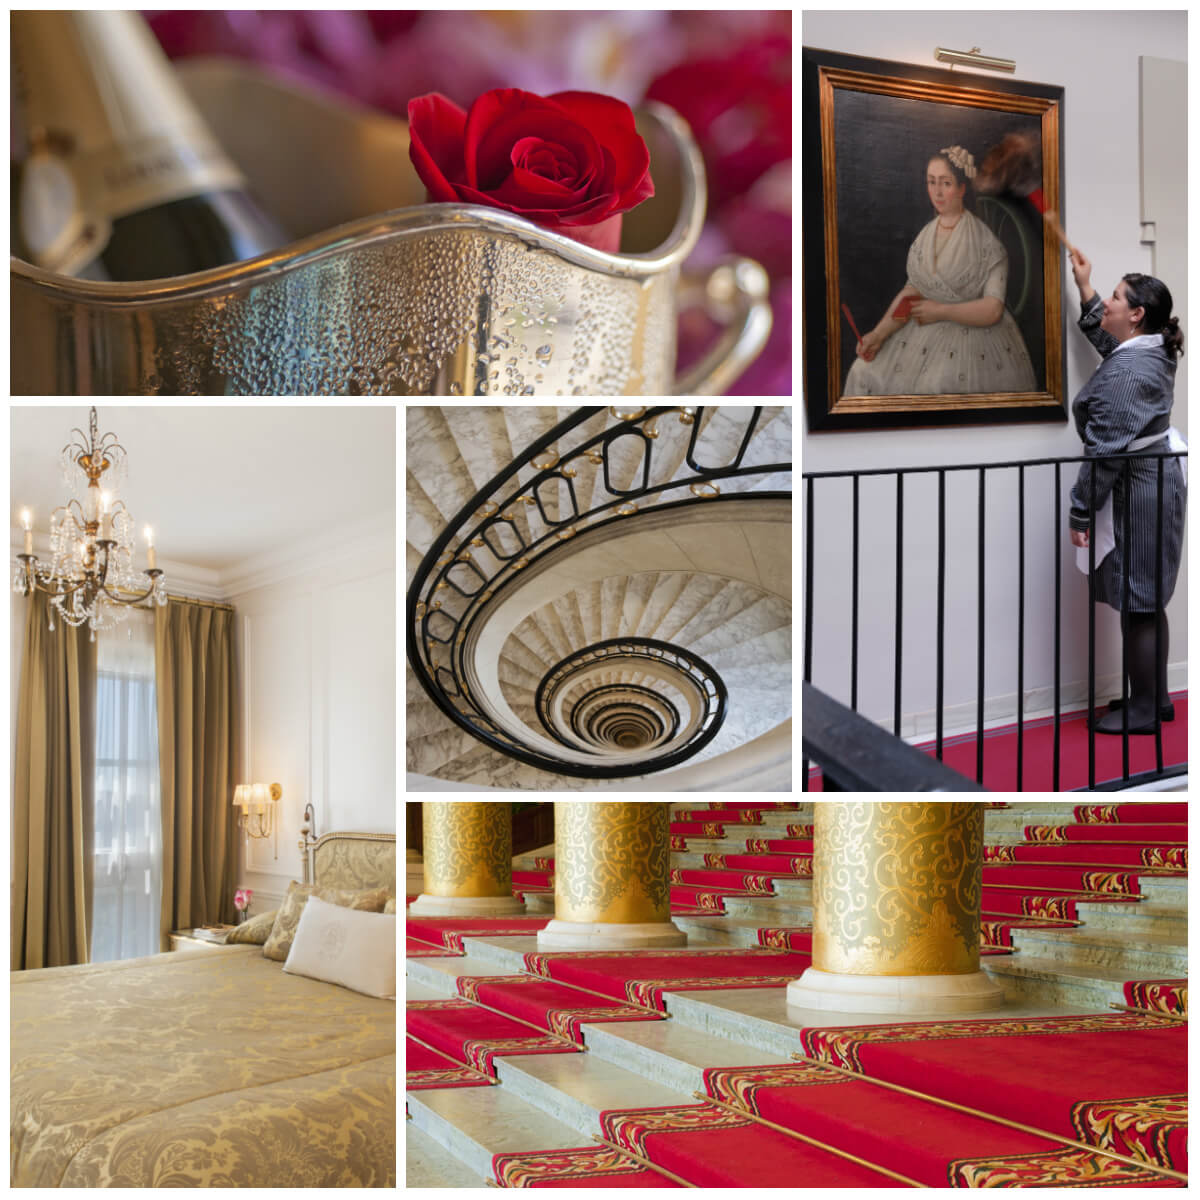 Photography for Historic Hotels by Michelle Chaplow